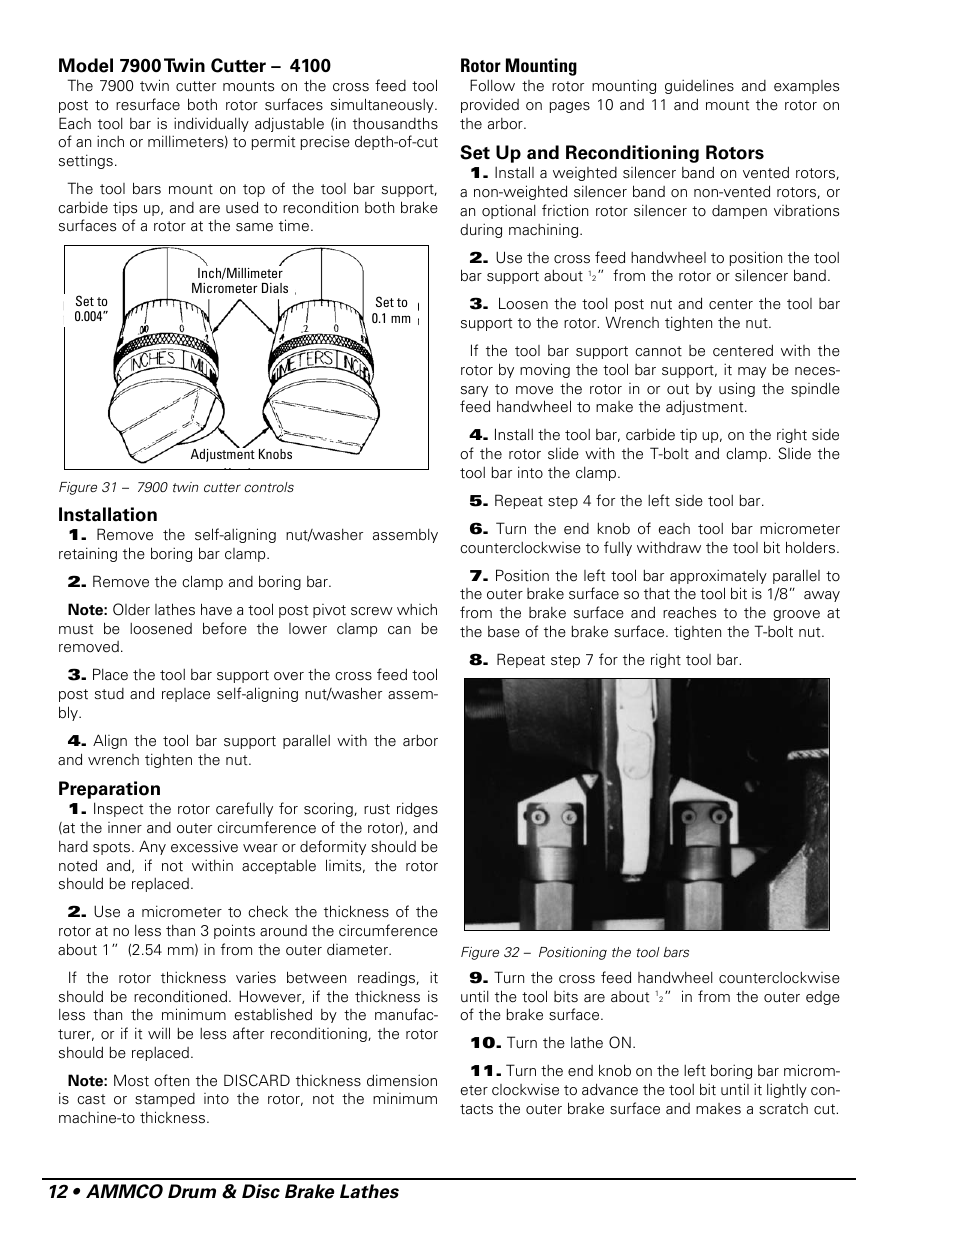 AMMCO 7700 Drum and Disc Brake lathe User Manual | Page 16